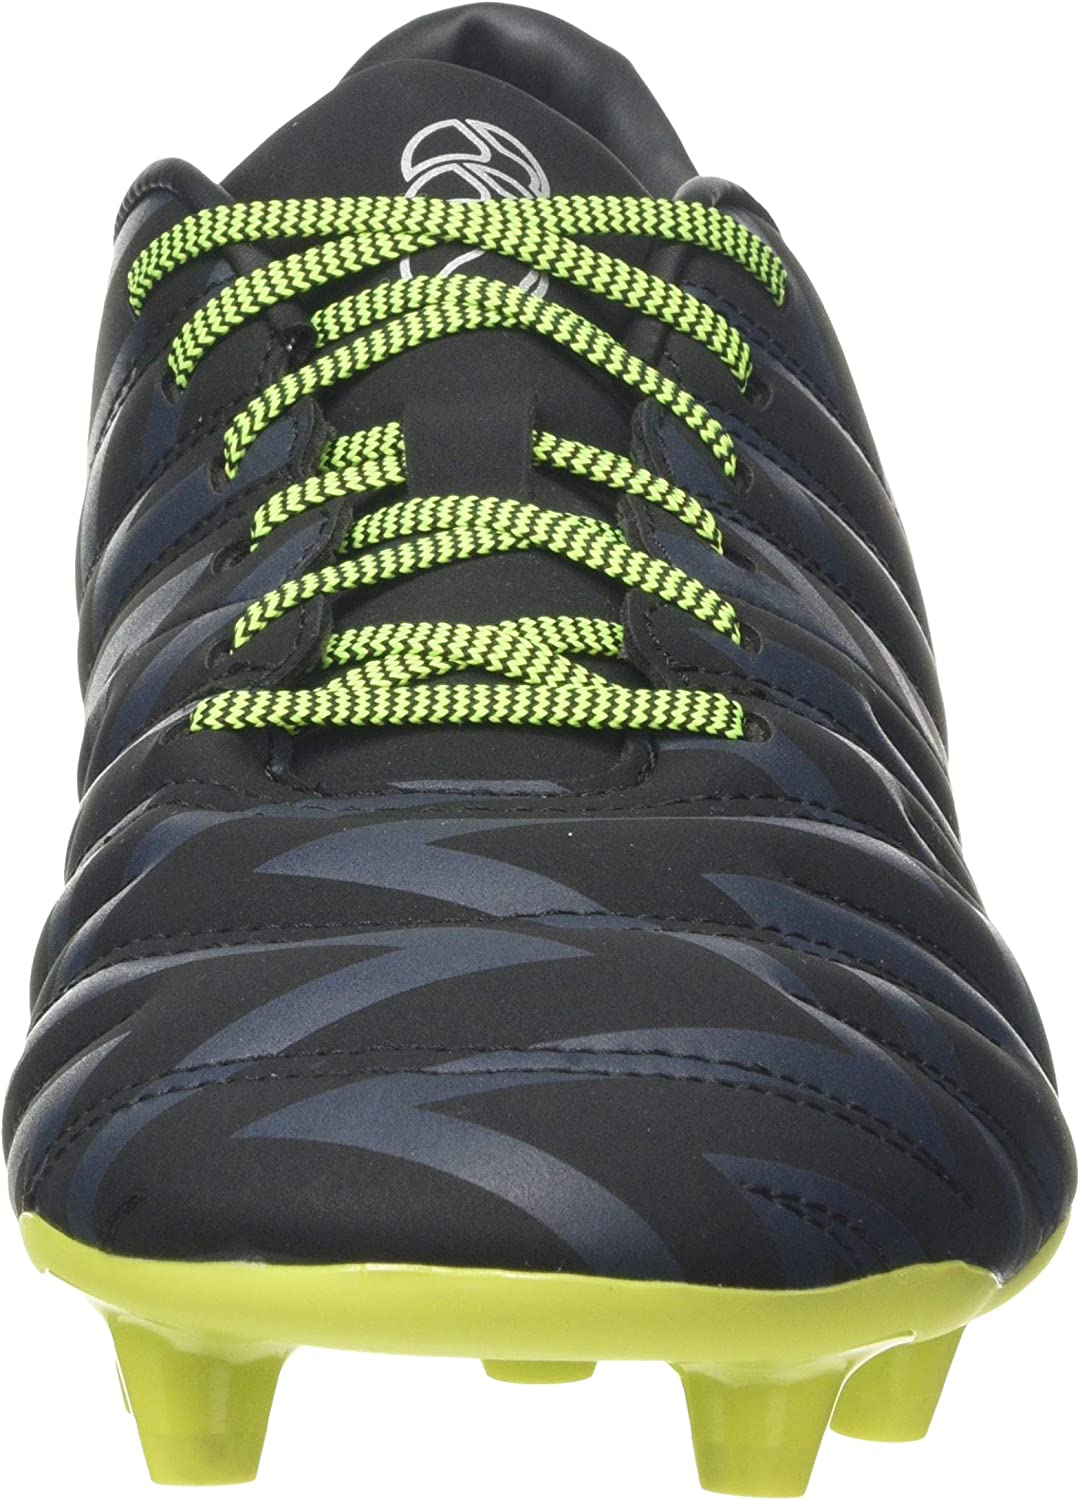 Canterbury of New Zealand Phoenix 2.0 Firm Ground Chaussures de Rugby Mixte